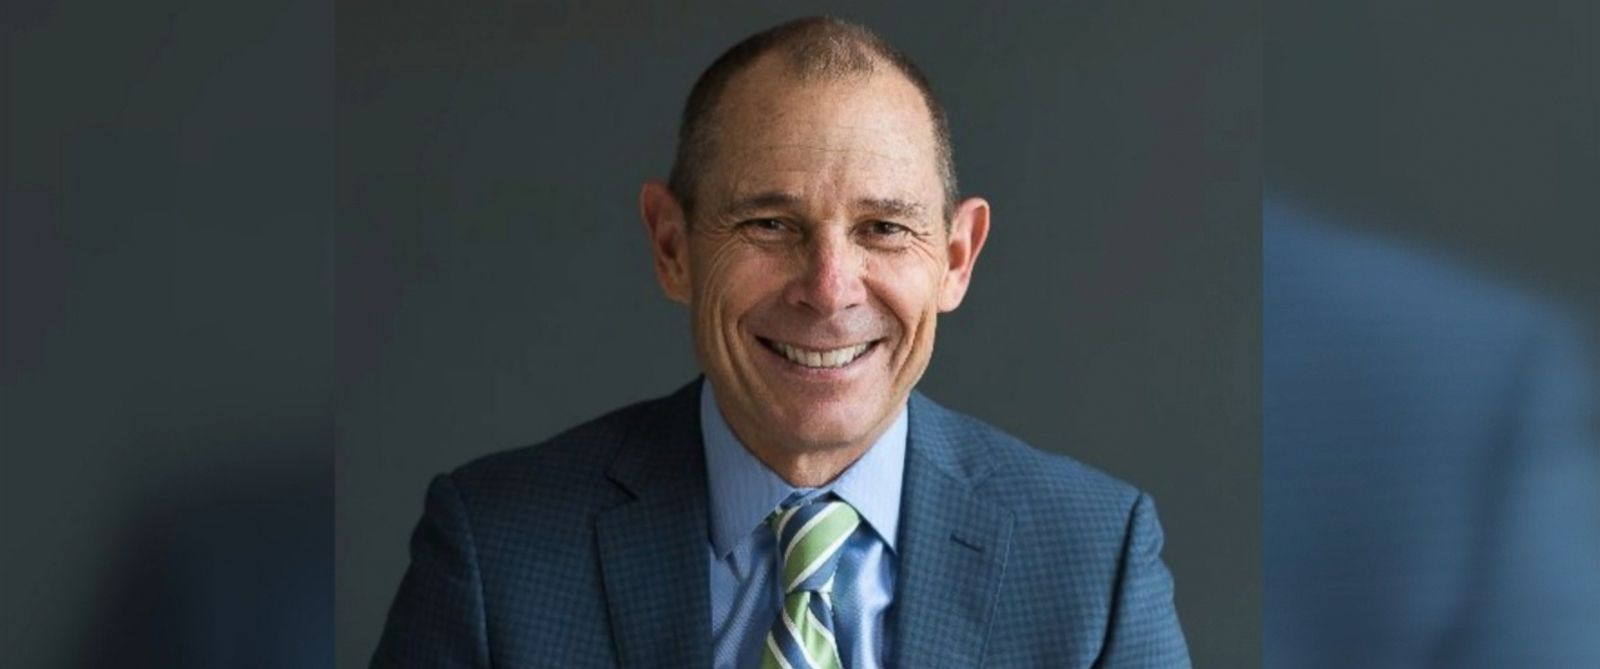 VIDEO: John Curtis, the mayor of Provo, Utah, won the Republican primary in his state's third congressional district Tuesday, capping a campaign that will see him advance to November's general election.